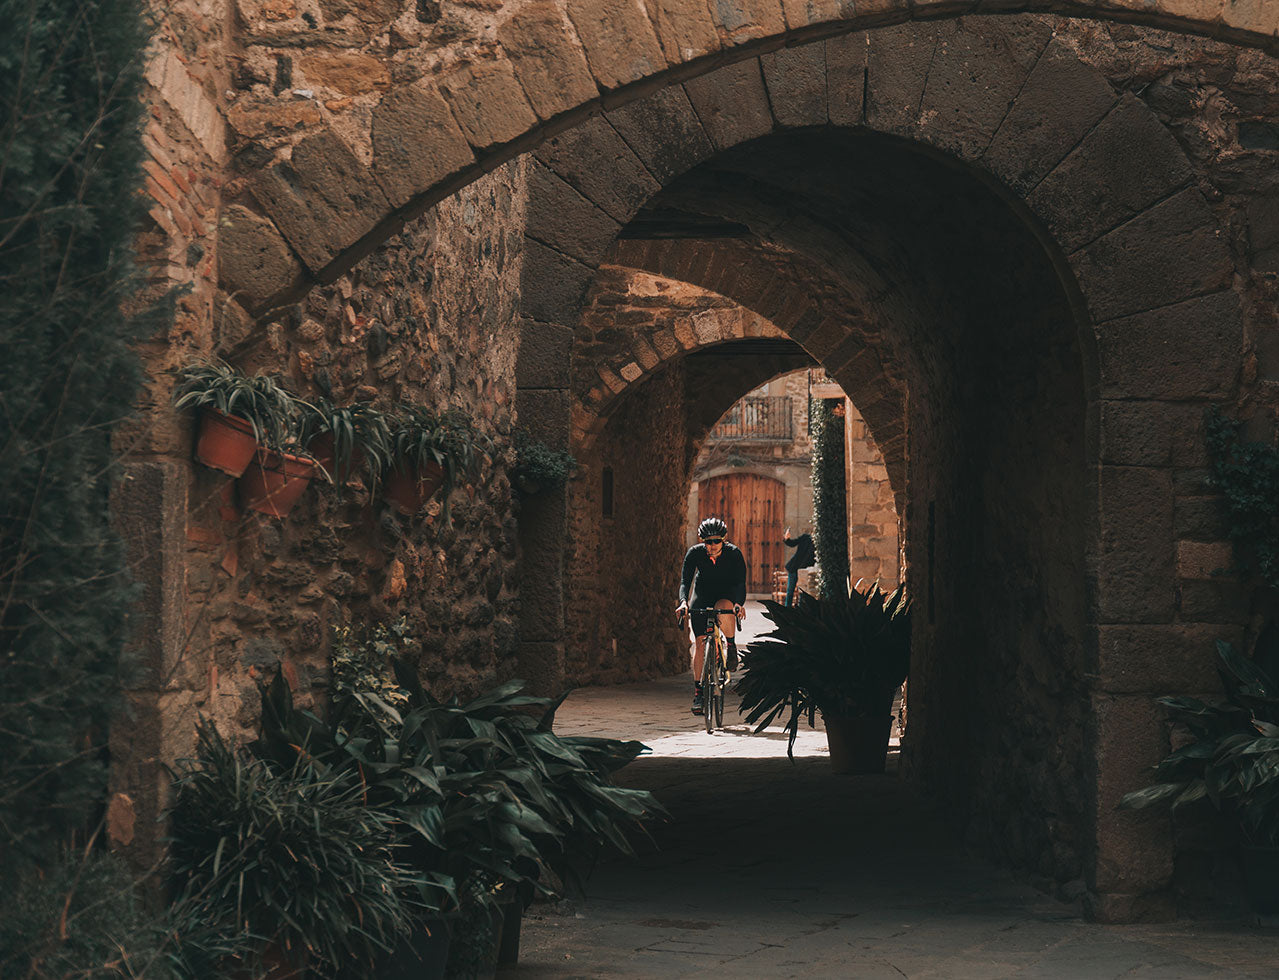 Cycling through the arches in Girona